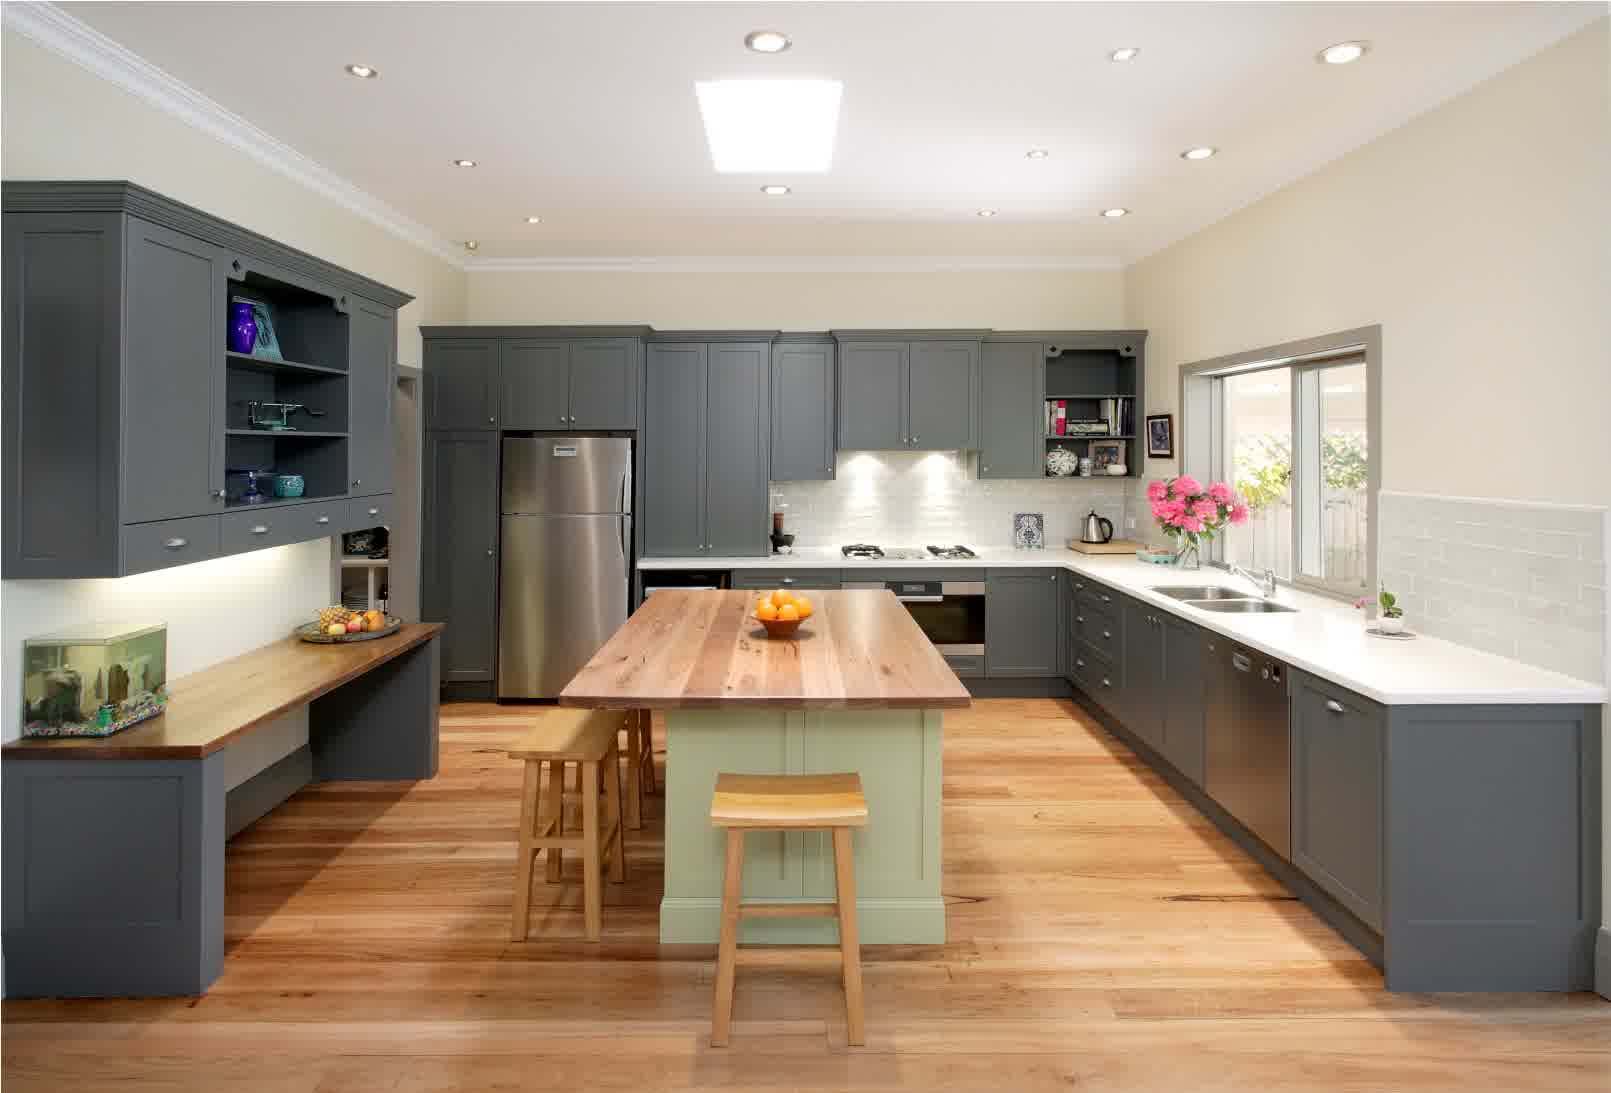 Enchanting Expansive Kitchen Style With Gorgeous Dark Grey Cabinet And Cute  Wooden Chair With Large Wooden